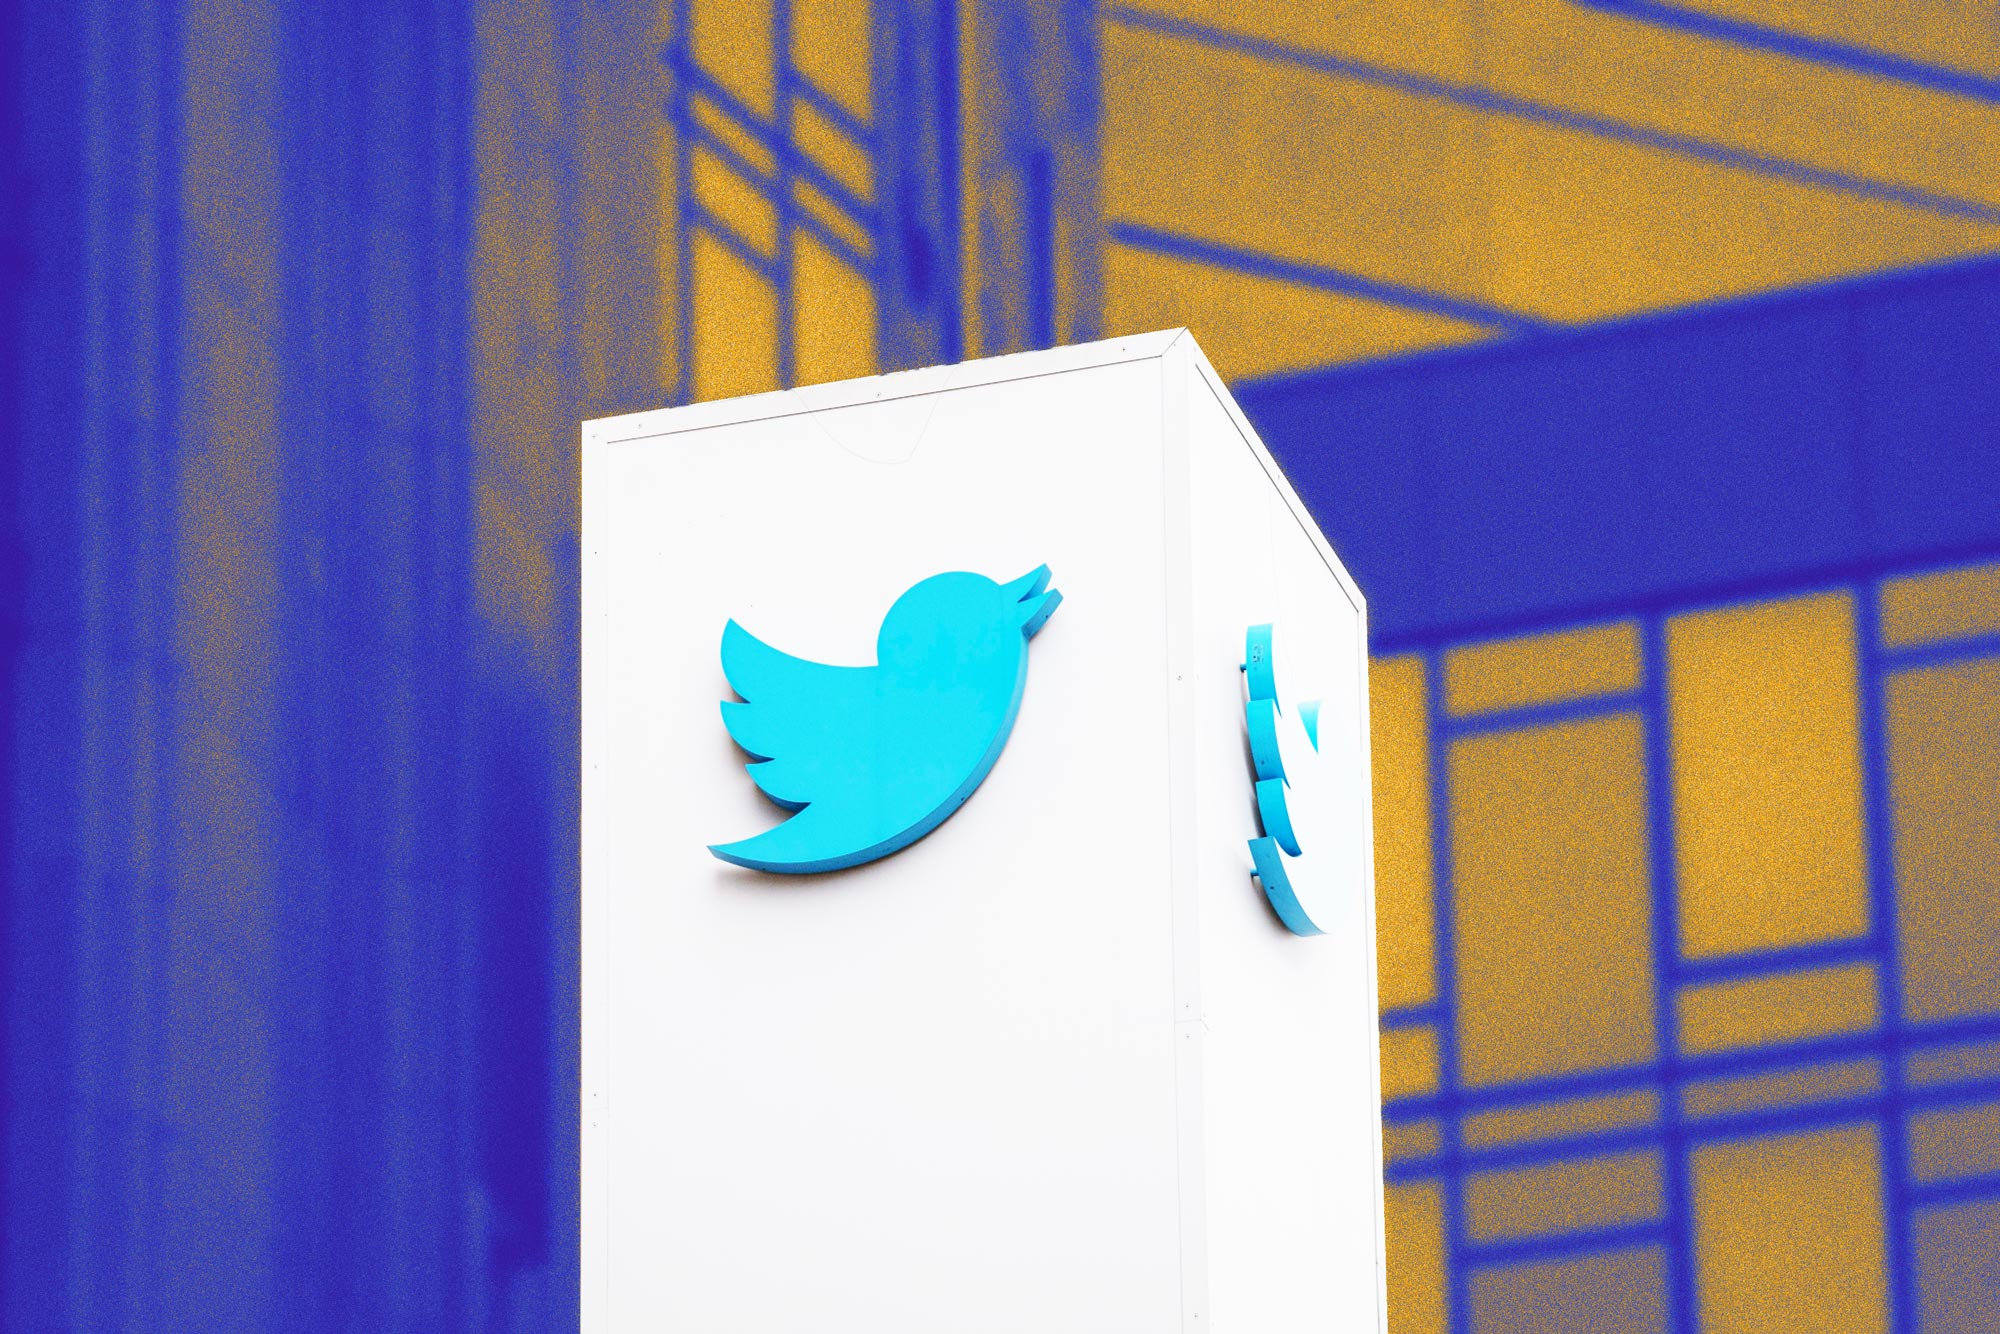 Twitter ad revenue plummets despite record user growth